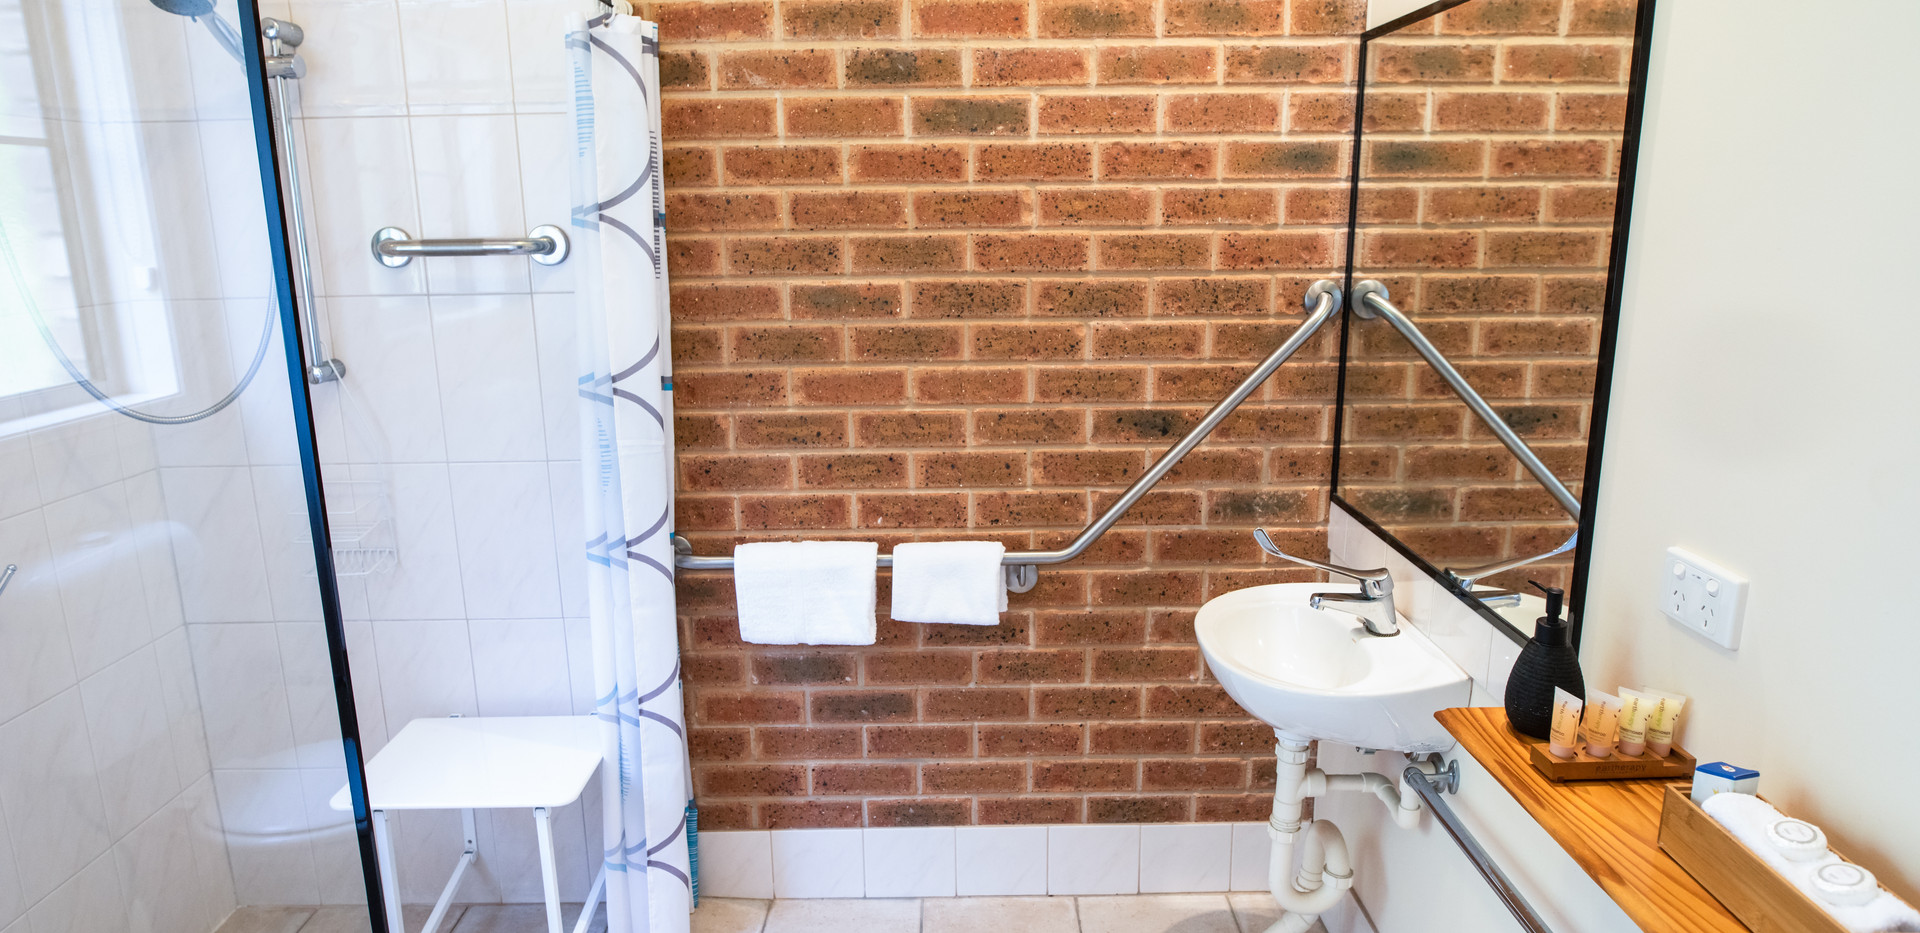 Ensuite with modifications